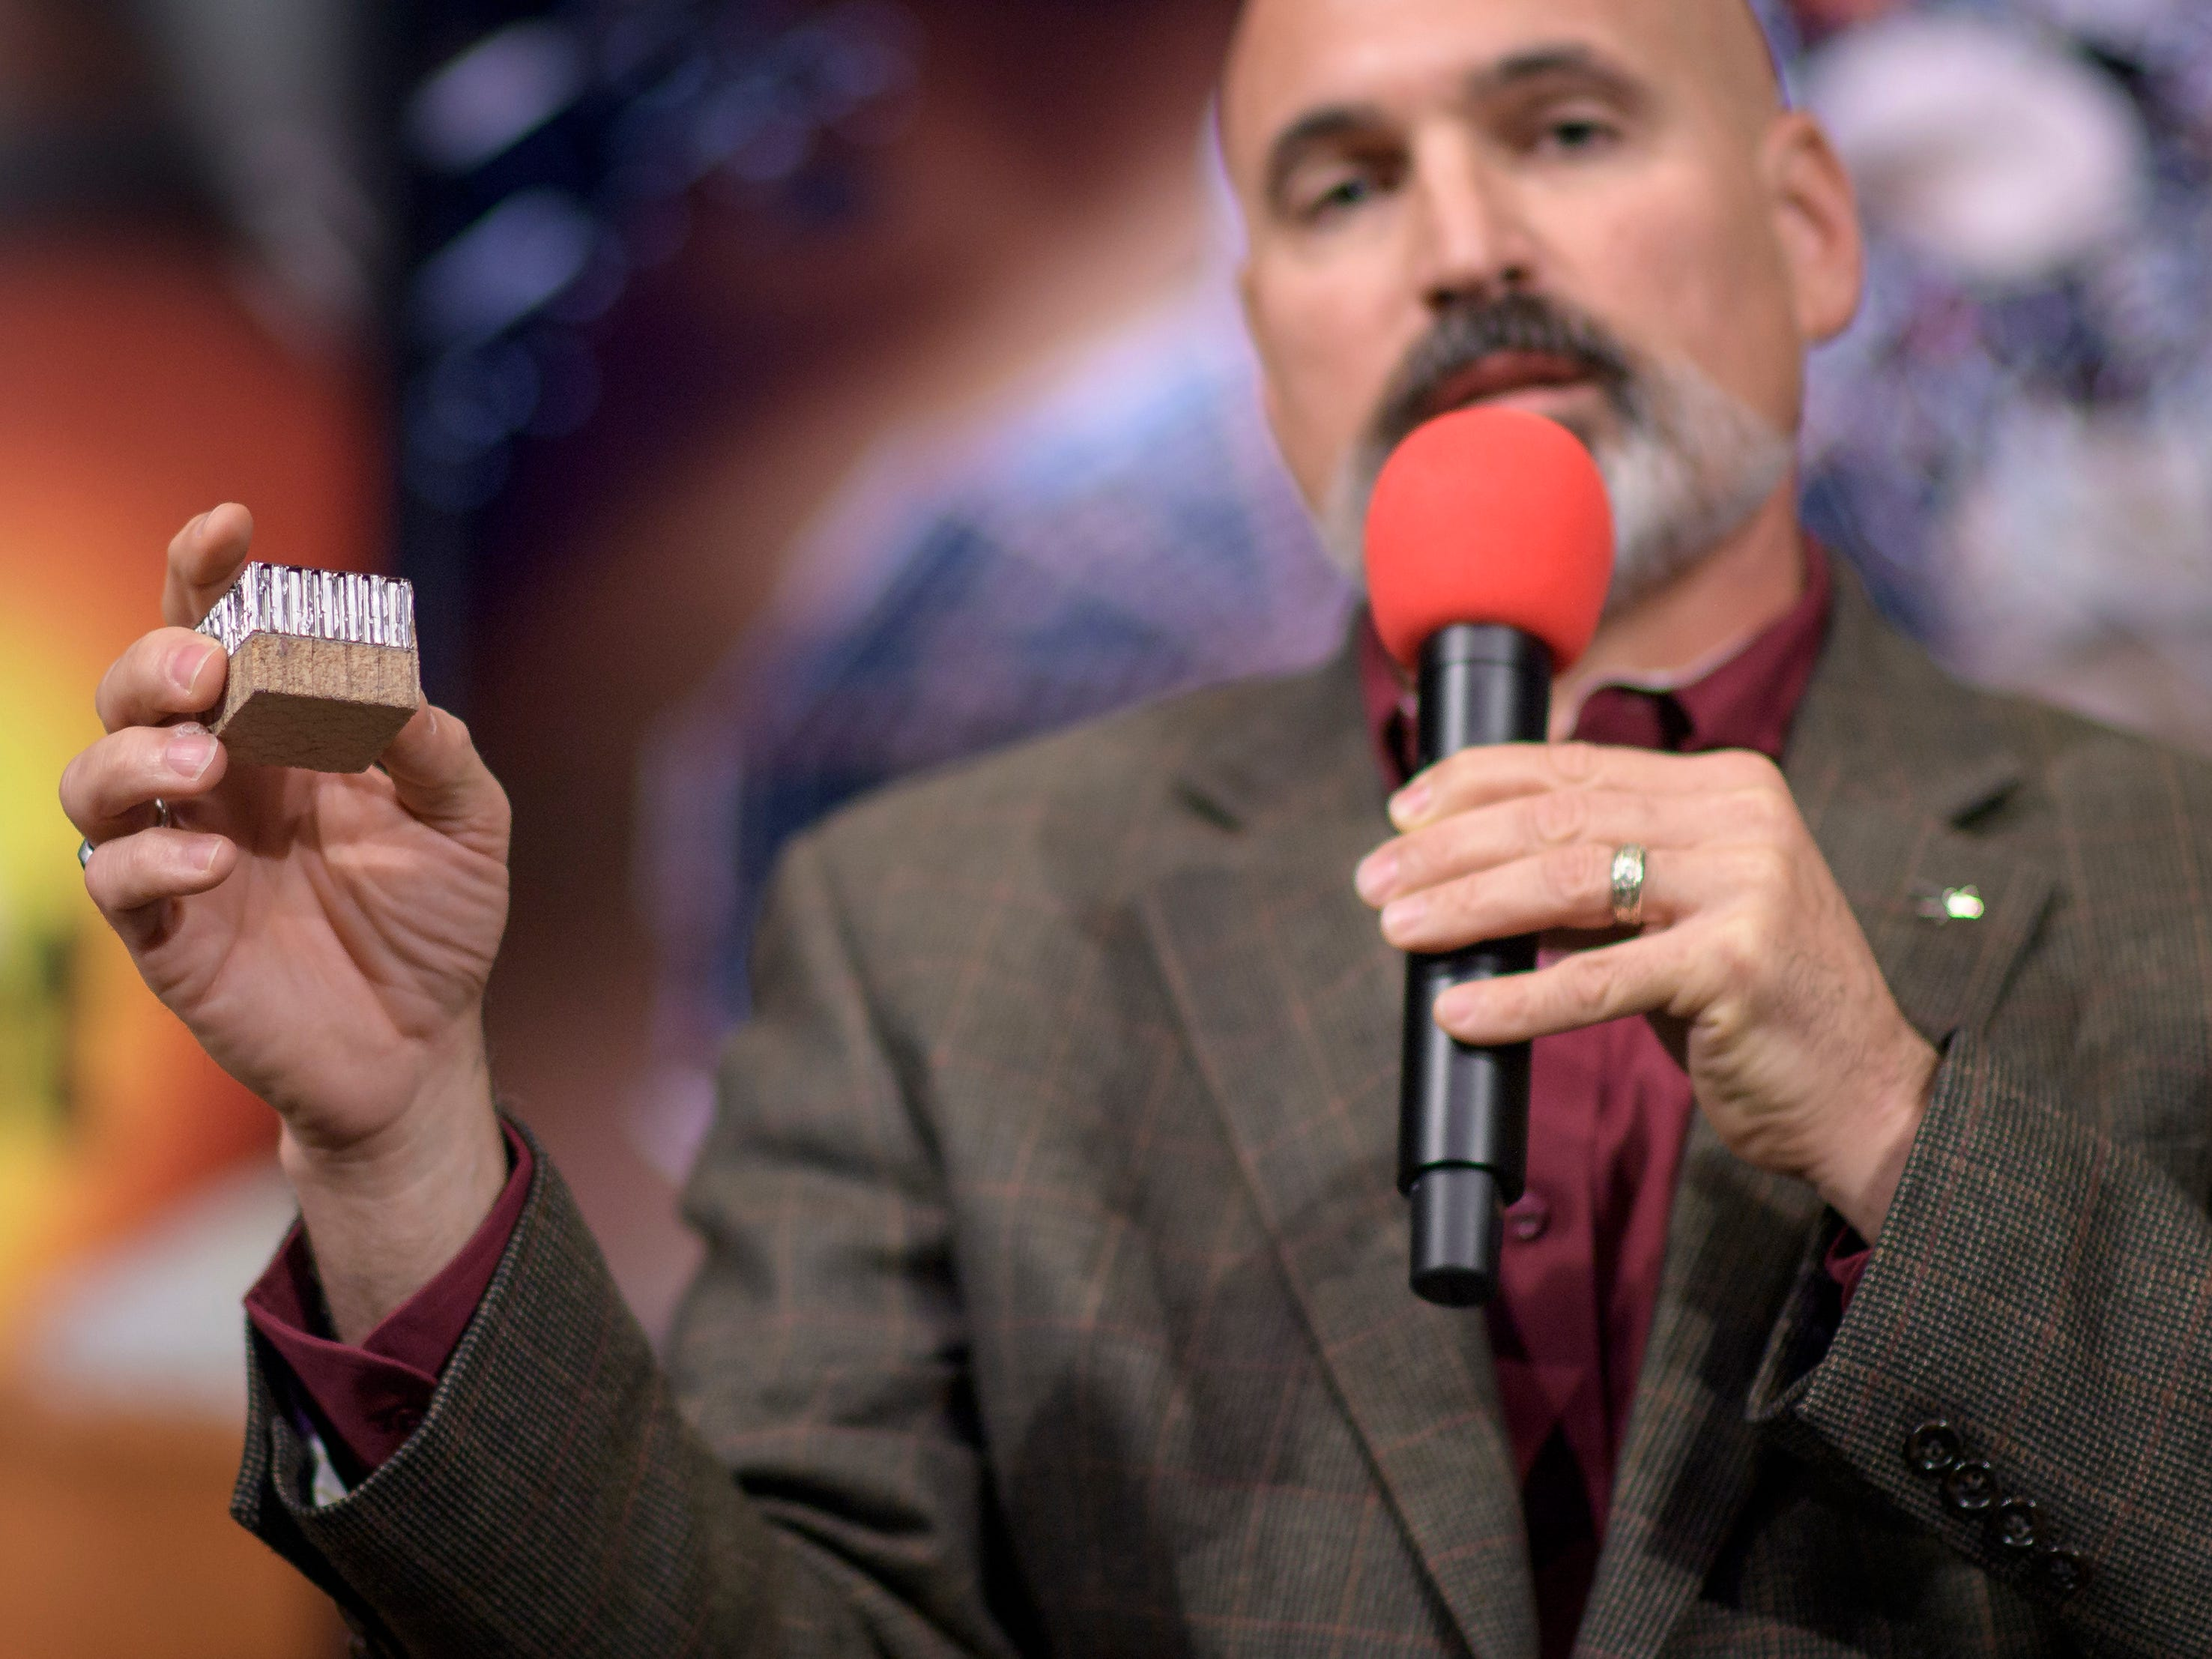 Tim Priser, quality director at Lockheed Martin Space Systems, shows a small piece of the type of heat shield used on the Mars InSight, during a social media briefing Sunday, Nov. 25, 2018, at NASA's Jet Propulsion Laboratory in Pasadena, Calif.